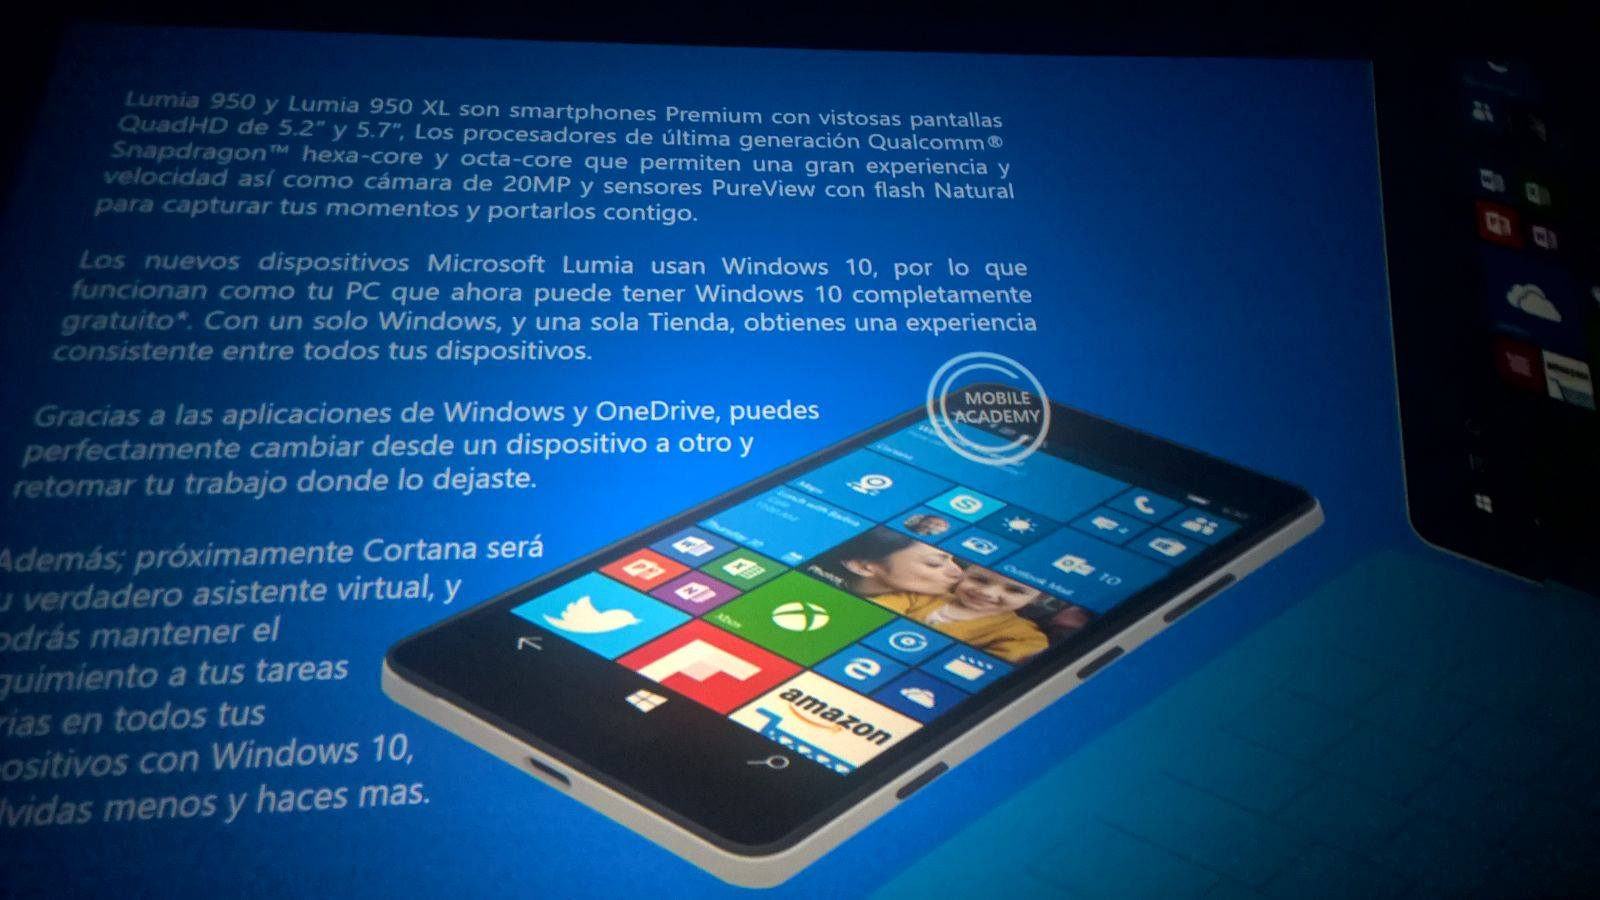 New pictures of the Lumia 950 XL and Lumia 950 leaked, confirms rumored specs 5